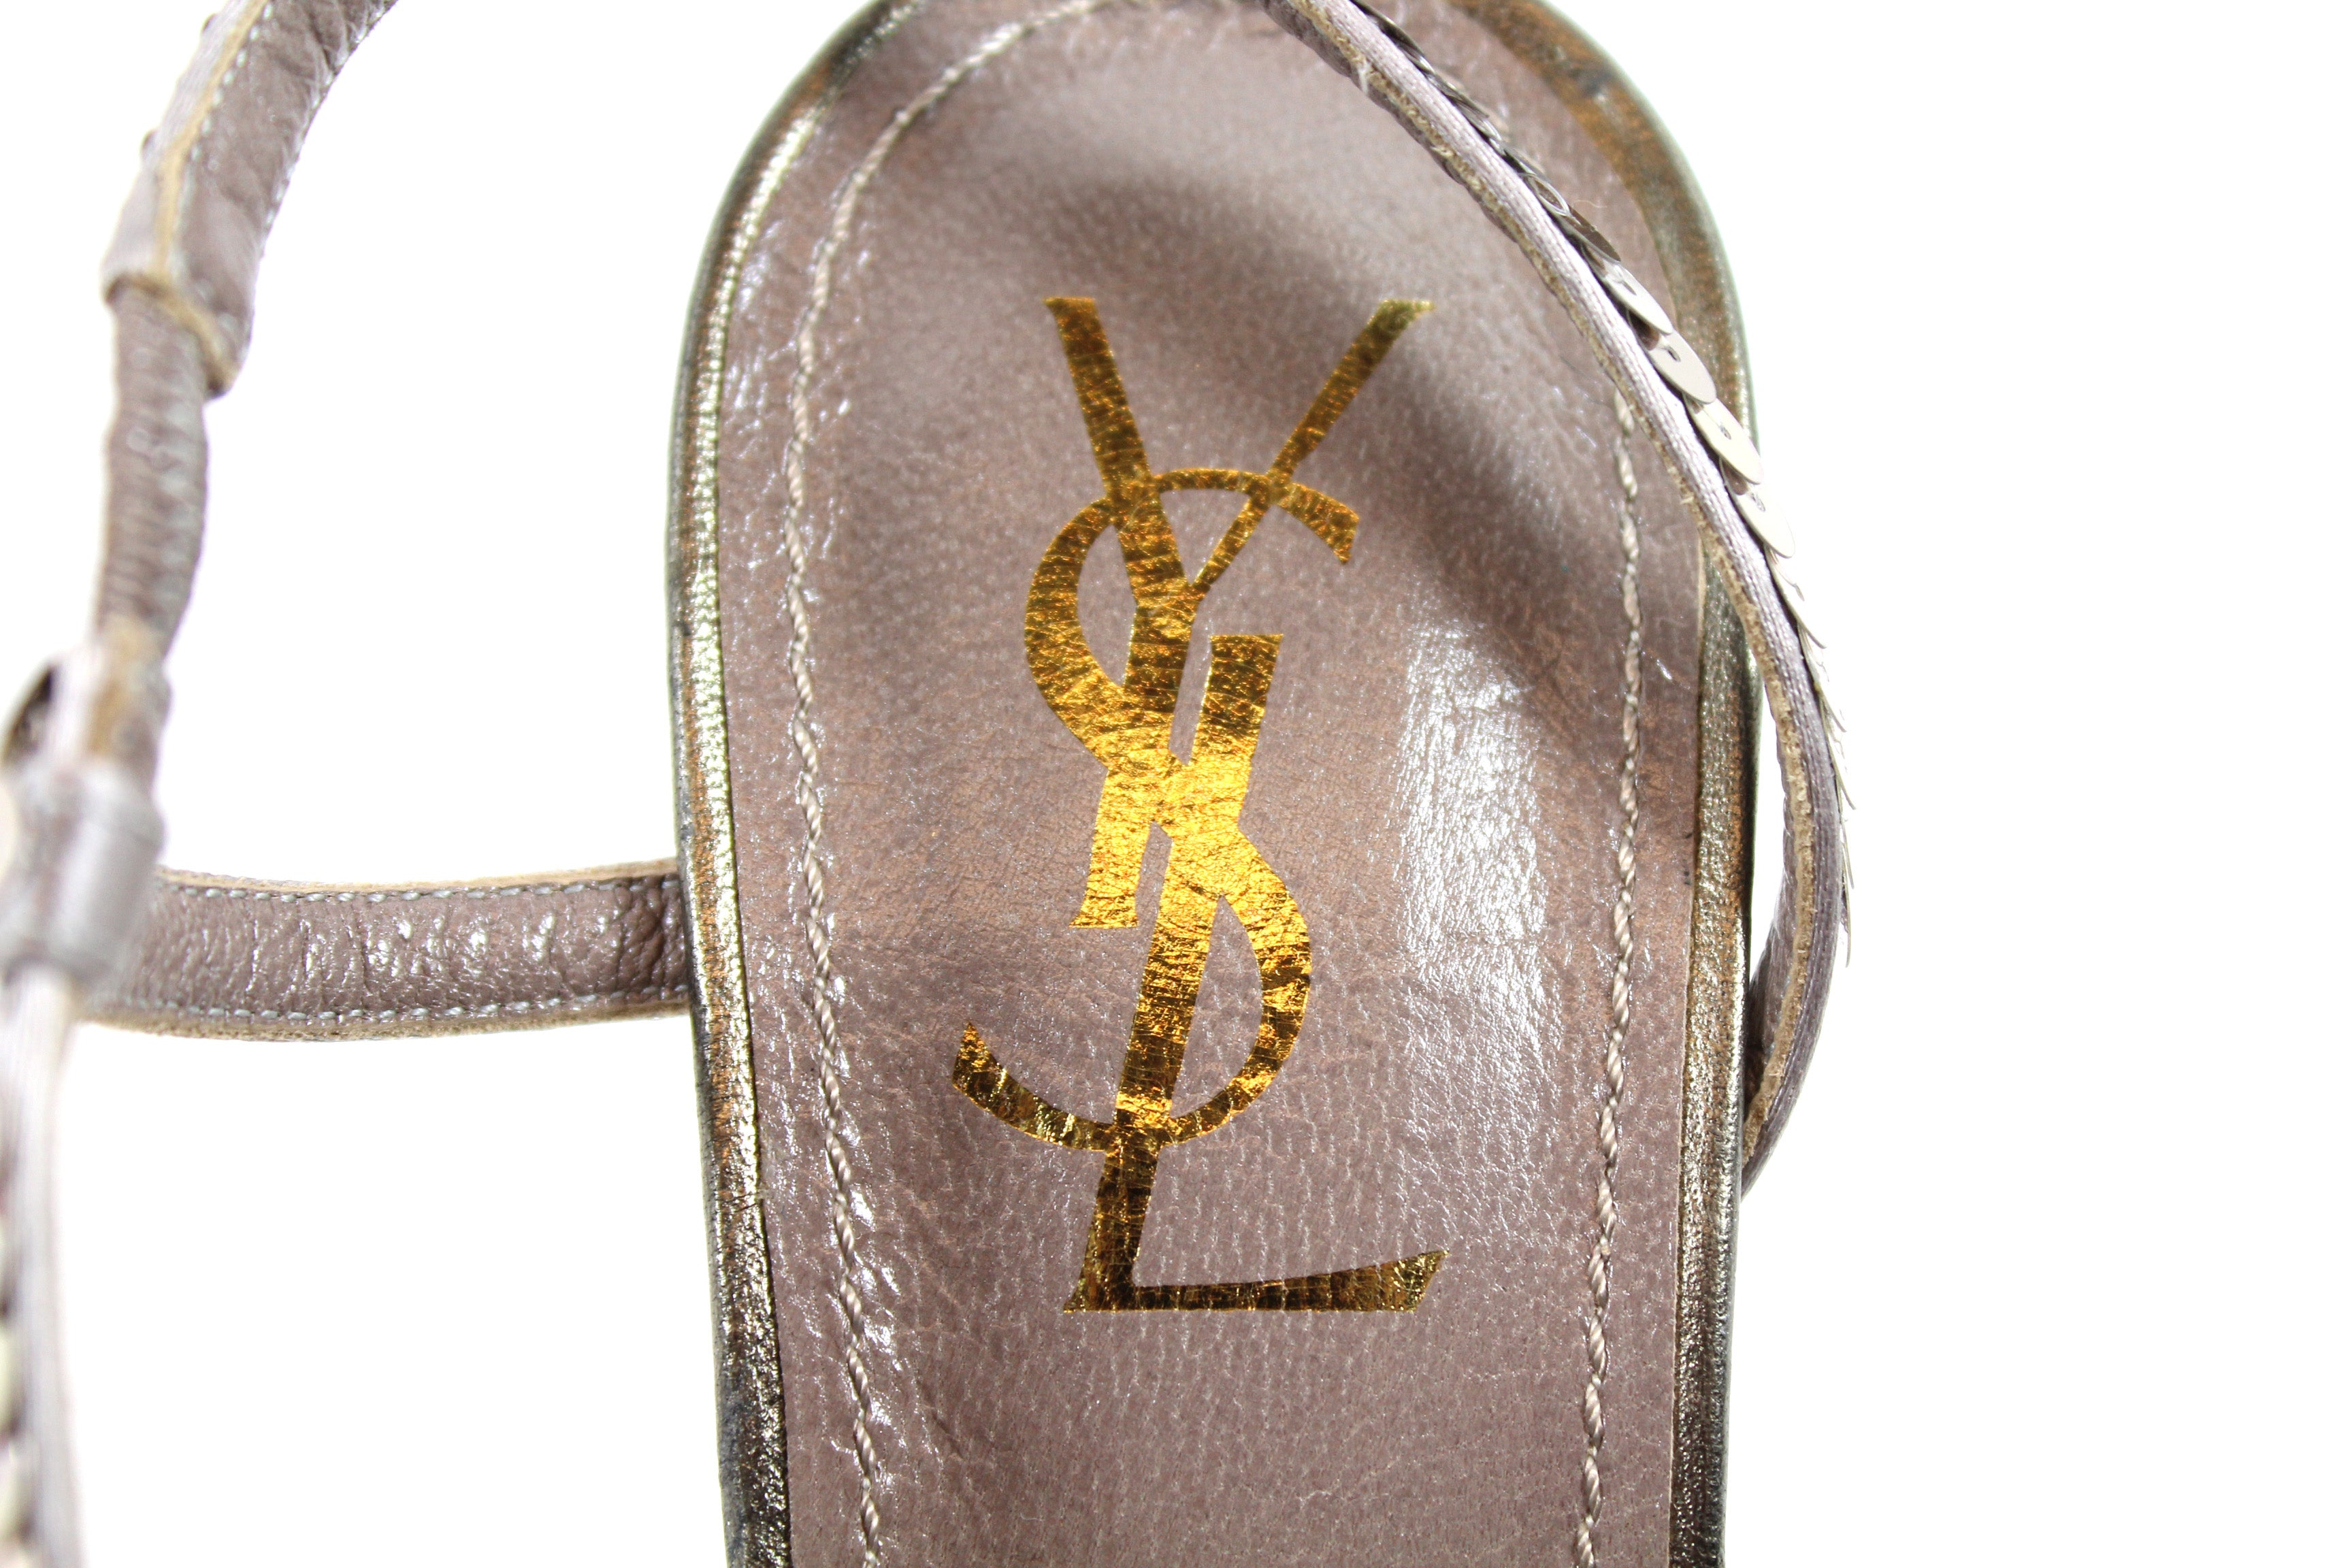 Yves Saint Laurent Taupe Sequined Strappy Sandals (Size 39.5)